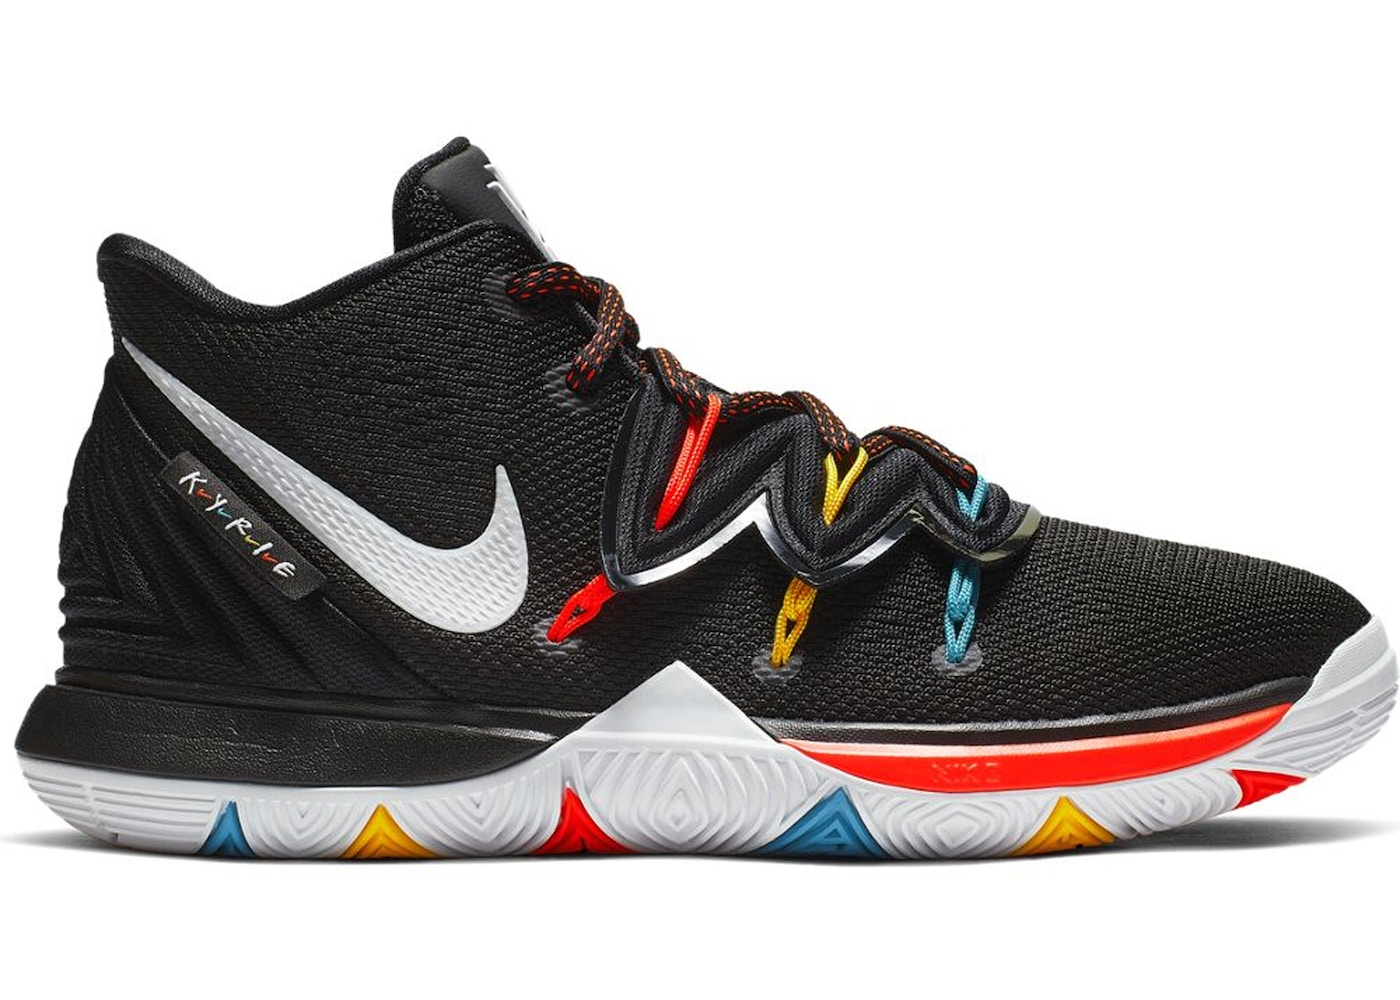 d0f18b13d7c Buy Nike Basketball Kyrie Shoes   Deadstock Sneakers